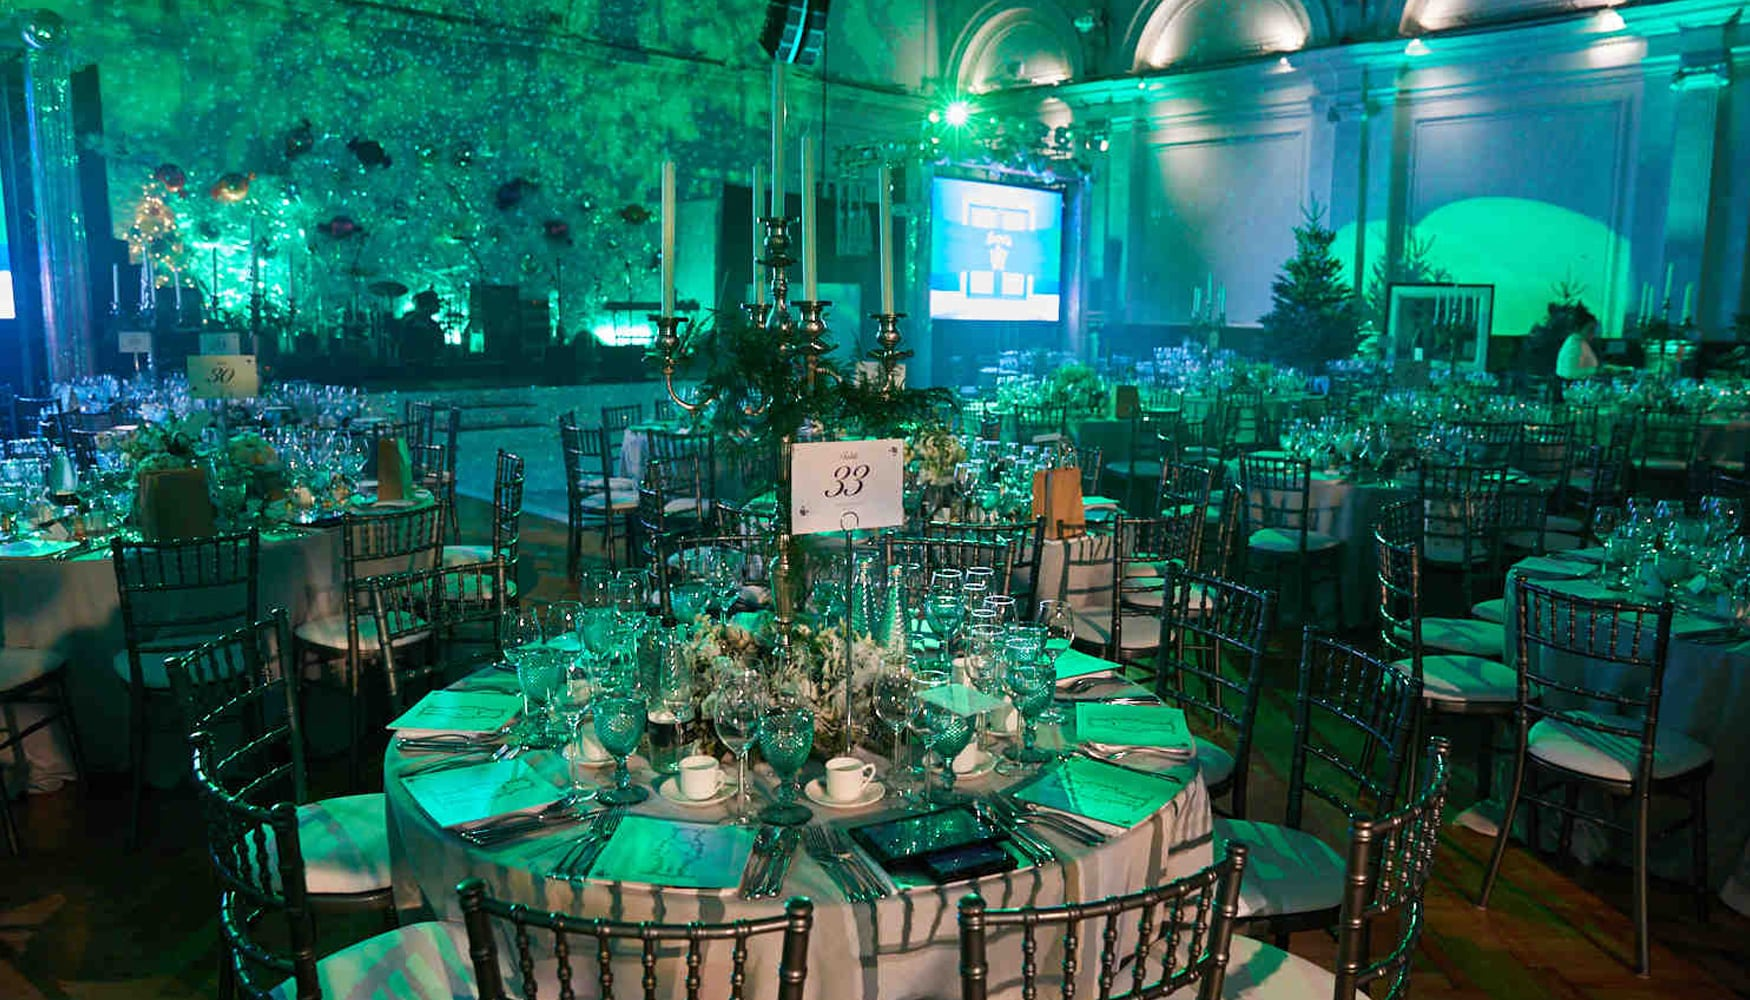 Cancer Research UK Emeralds & Ivy Ball event venue